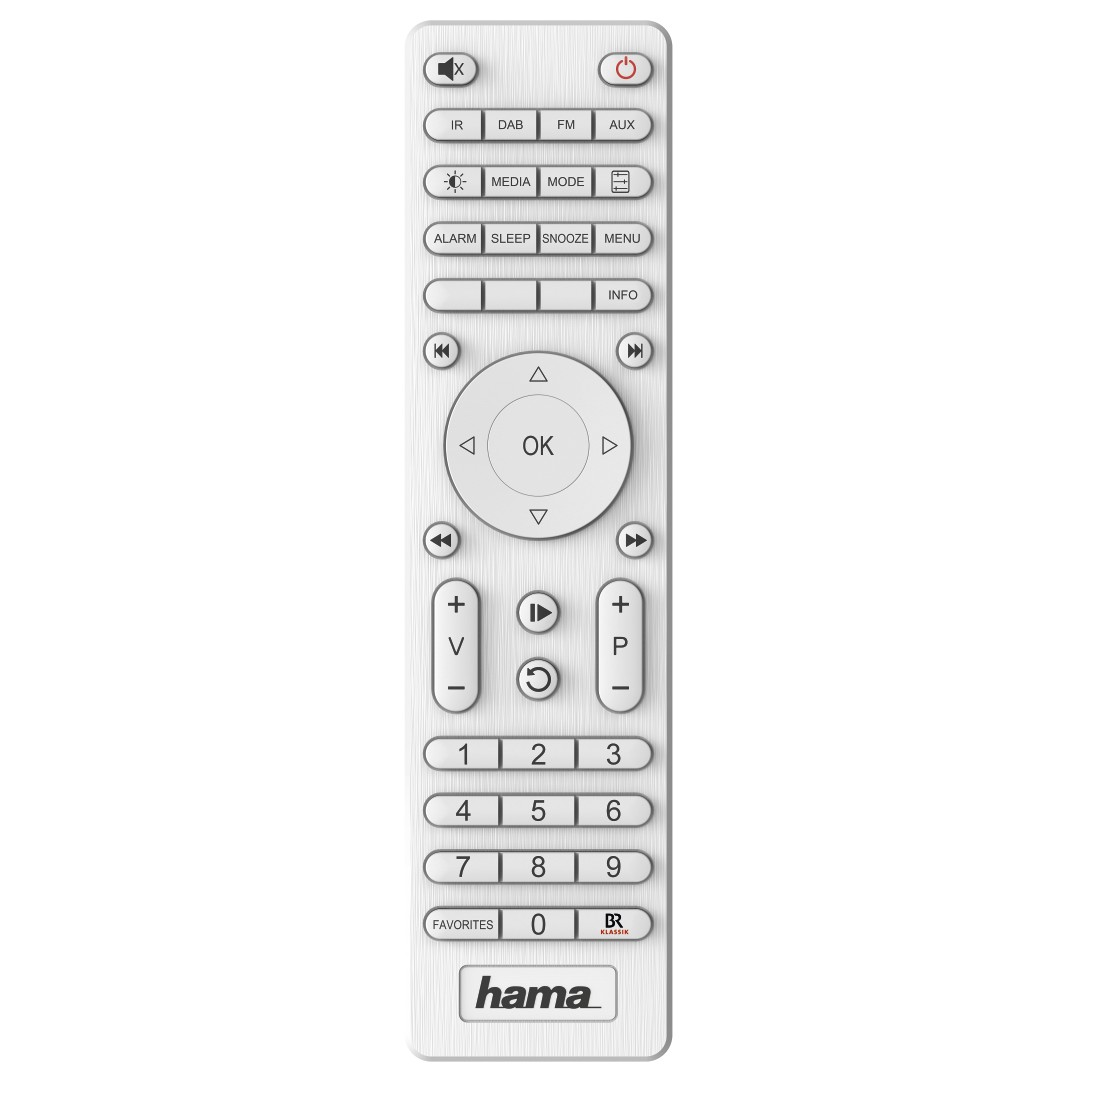 dex3 Druckfähiges Detail 3 - Hama, Digitalradio DIR3110M, Internetradio/DAB+/FM/Multiroom/App-Steuerung